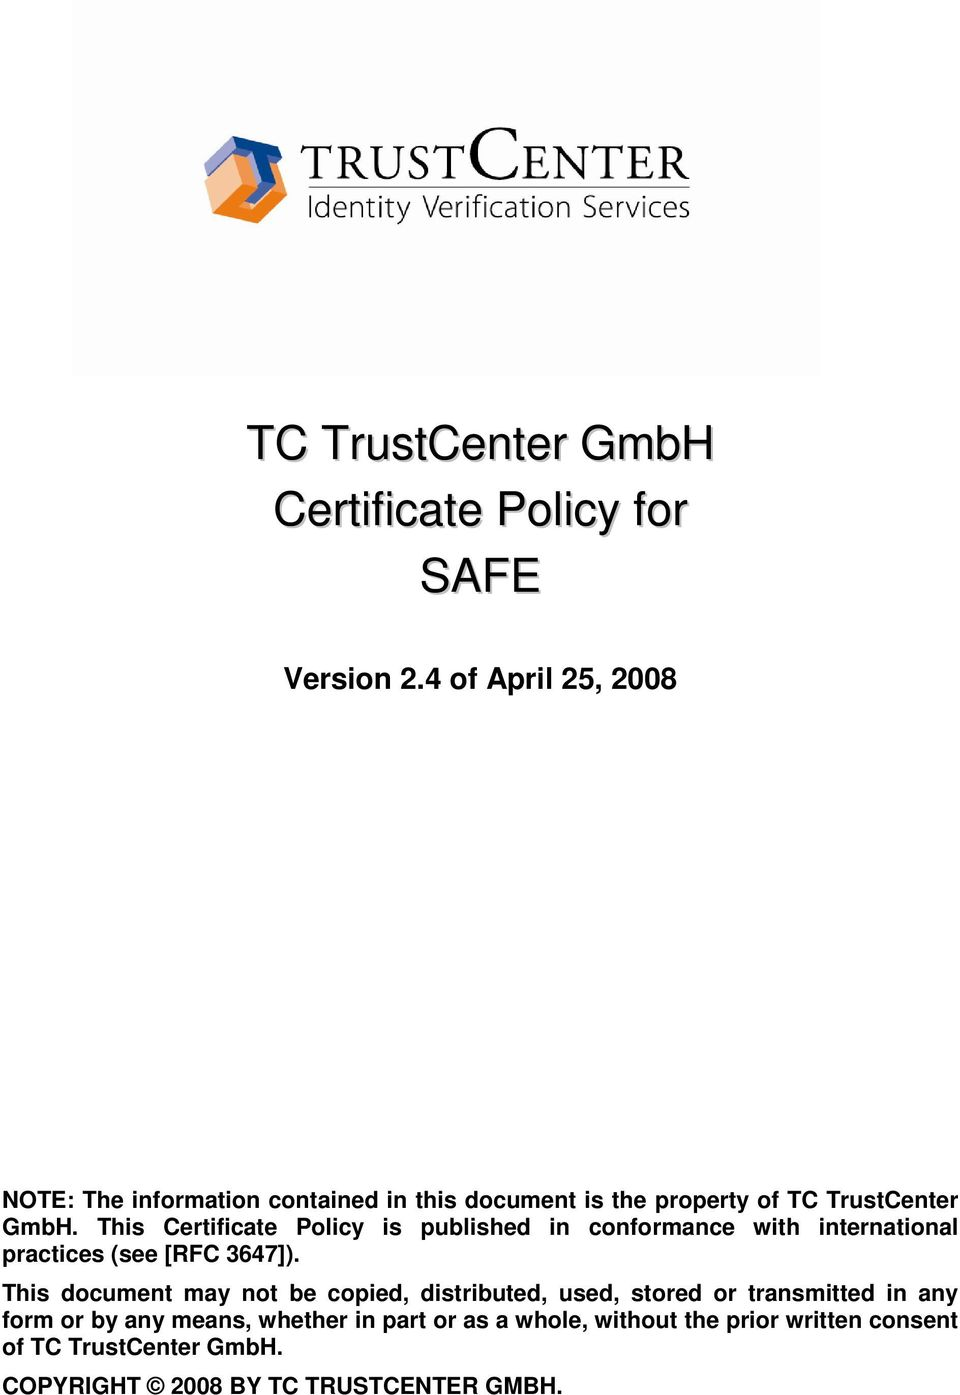 This Certificate Policy is published in conformance with international practices (see [RFC 3647]).